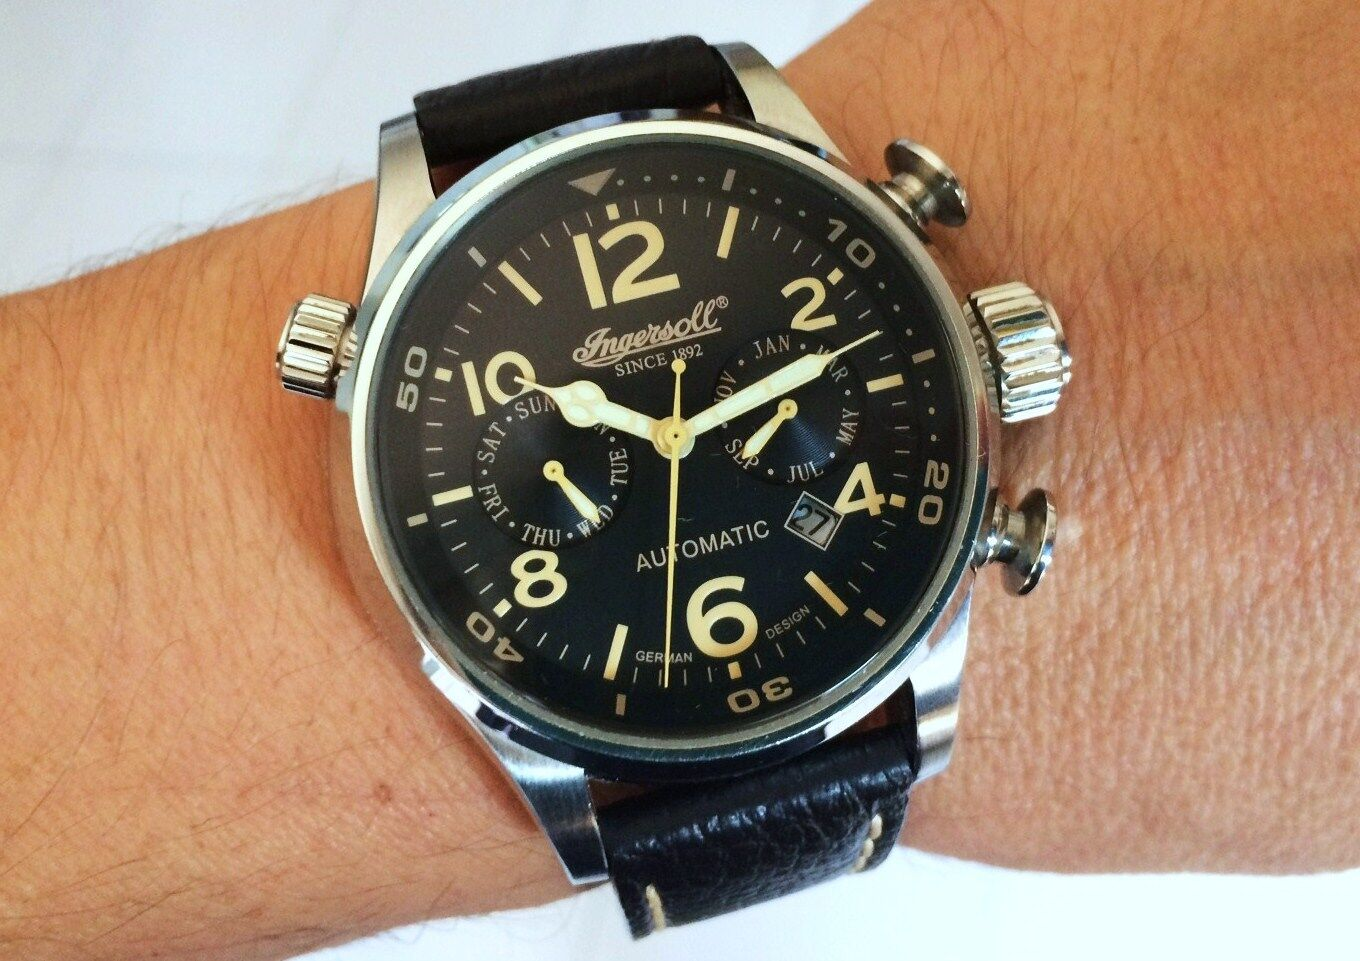 Orologio Ingersoll 1809 BULL RUN Automatic watch oversize 46mm militar style